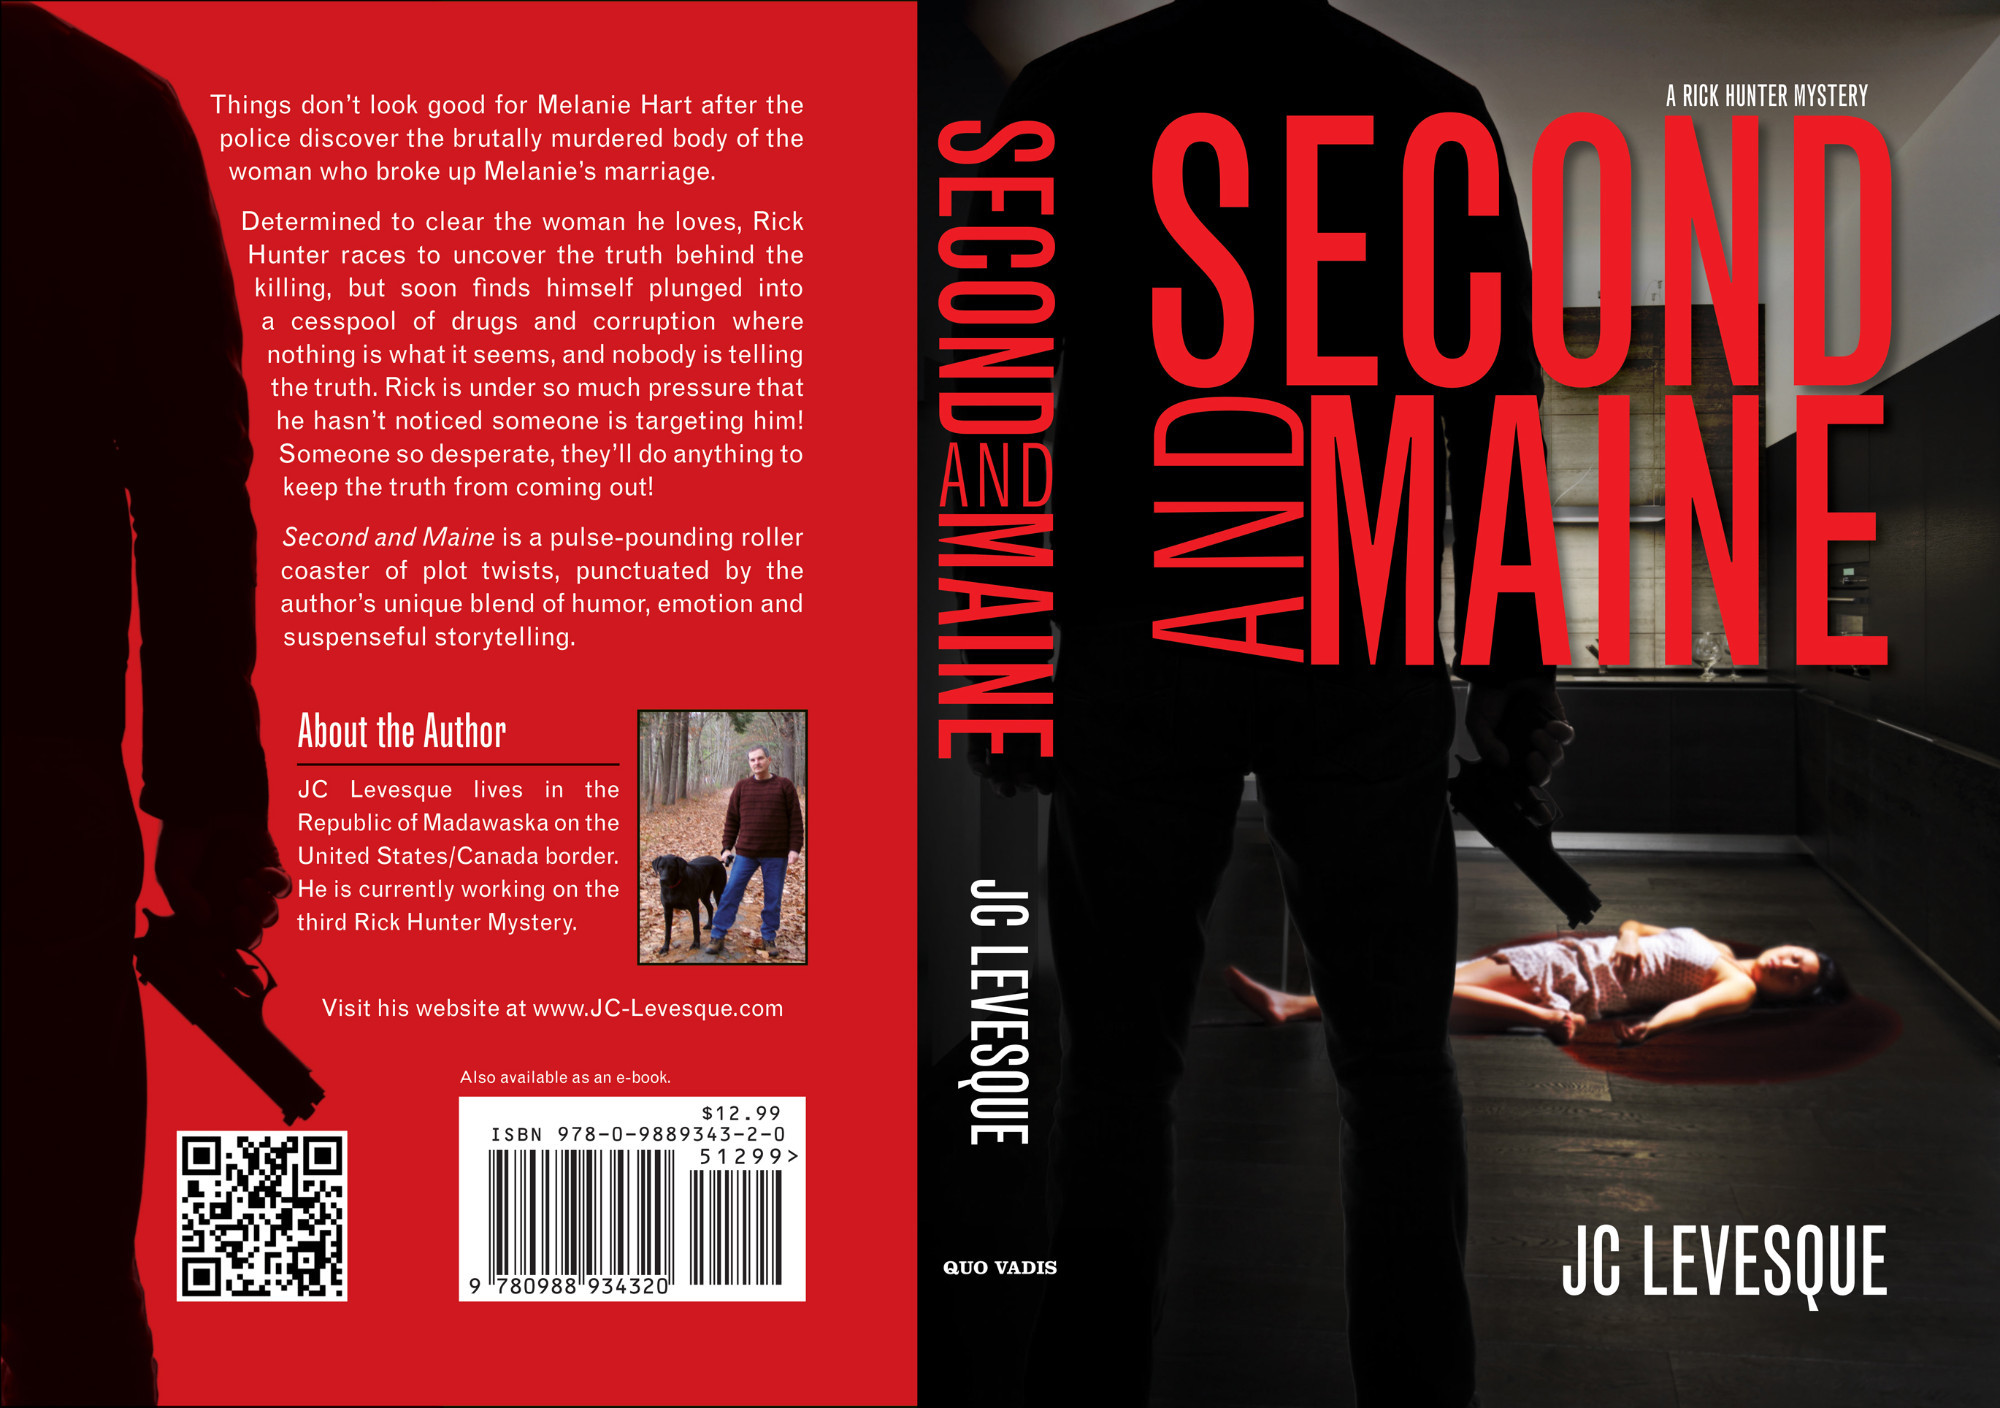 JCL_SecondAndMaine_CoverSpread_7714_578-147.jpg